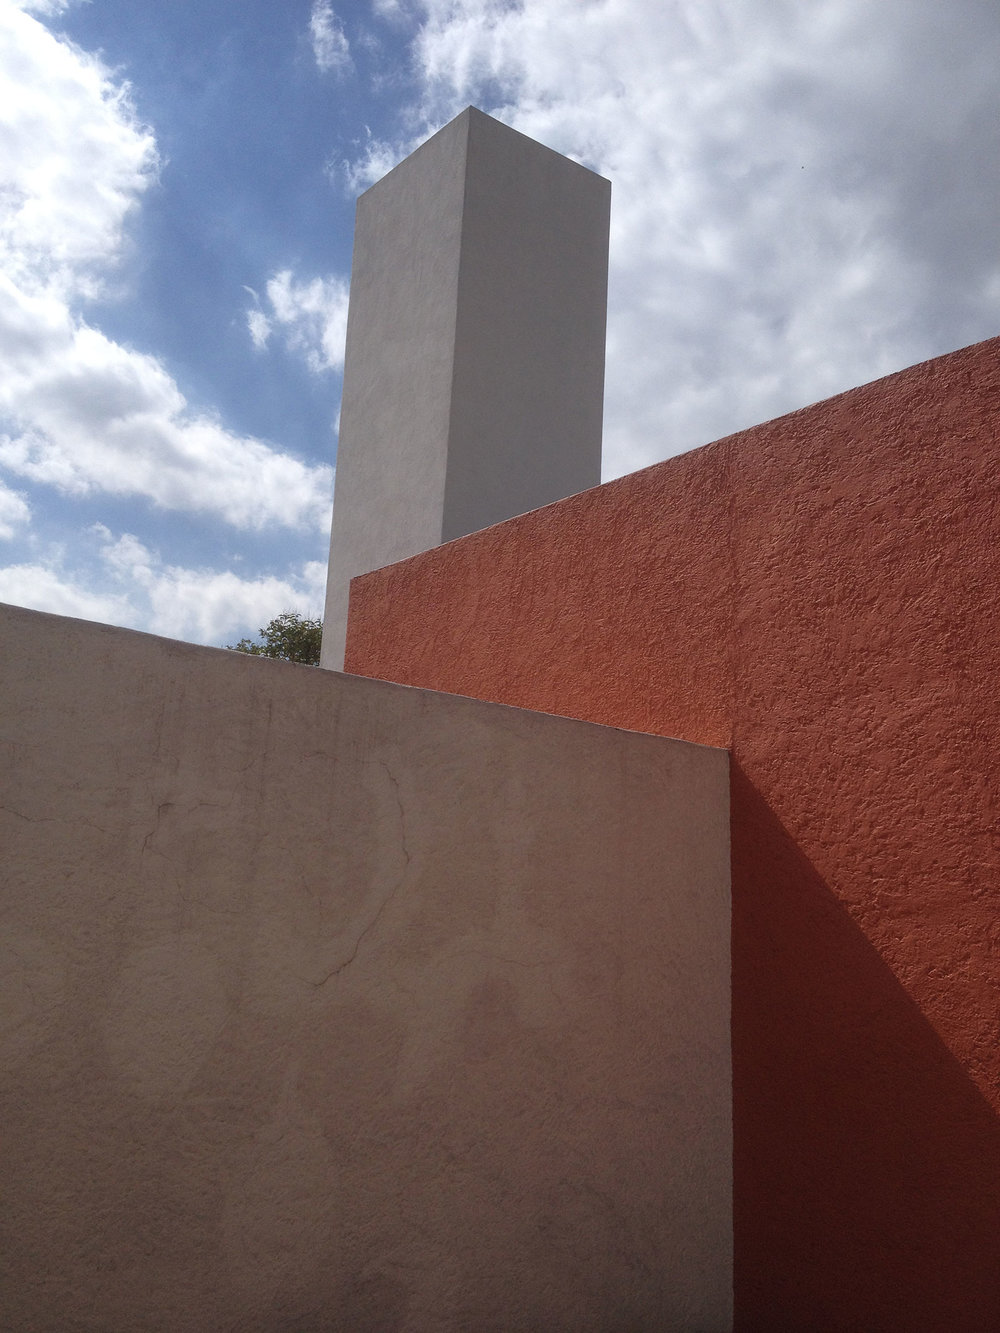 The roof terrace of Luis Barragán's house.